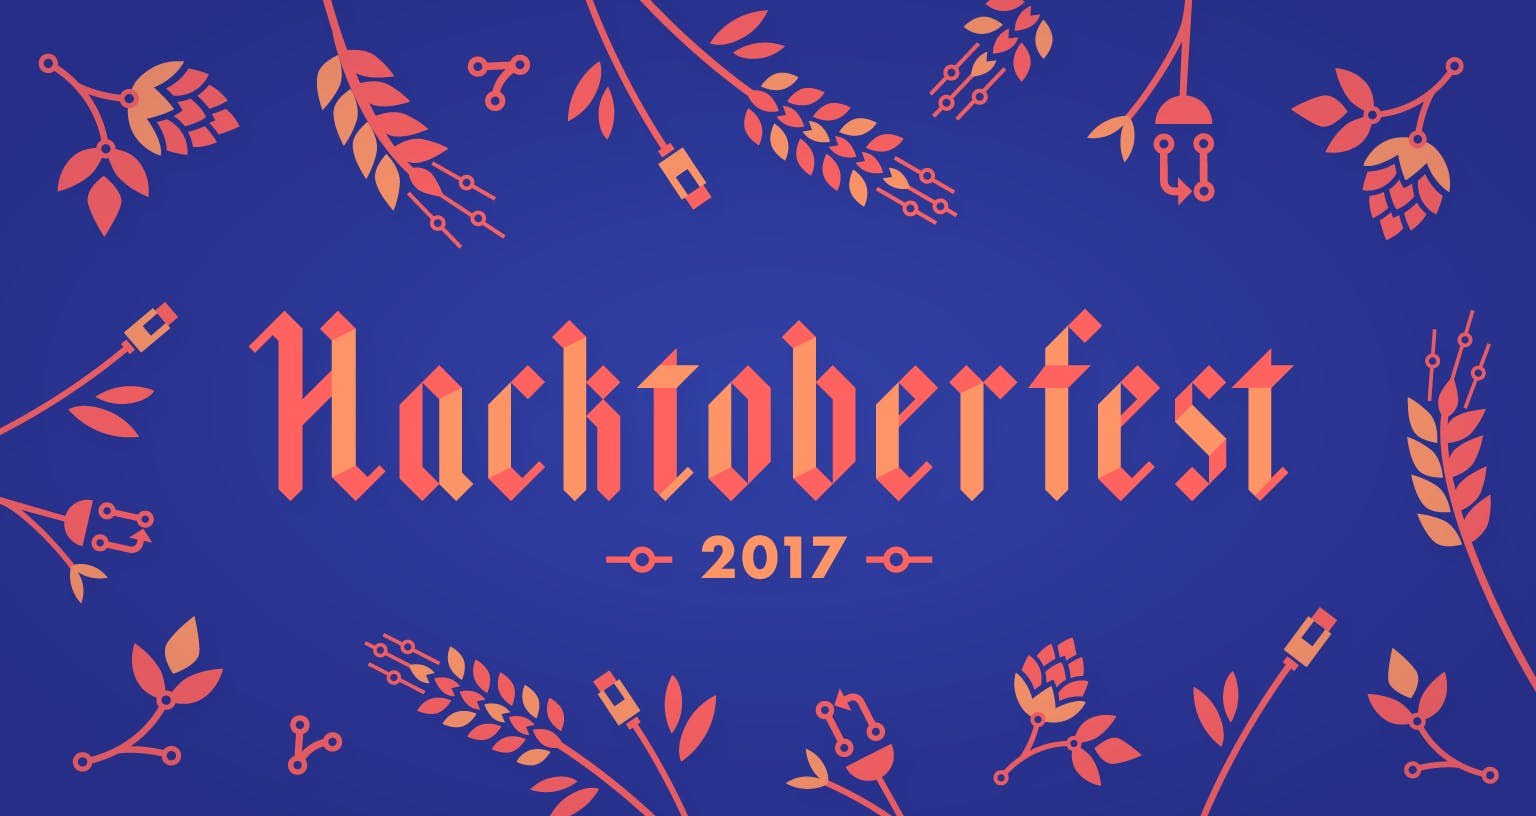 Hacktoberfest 2017 illustration